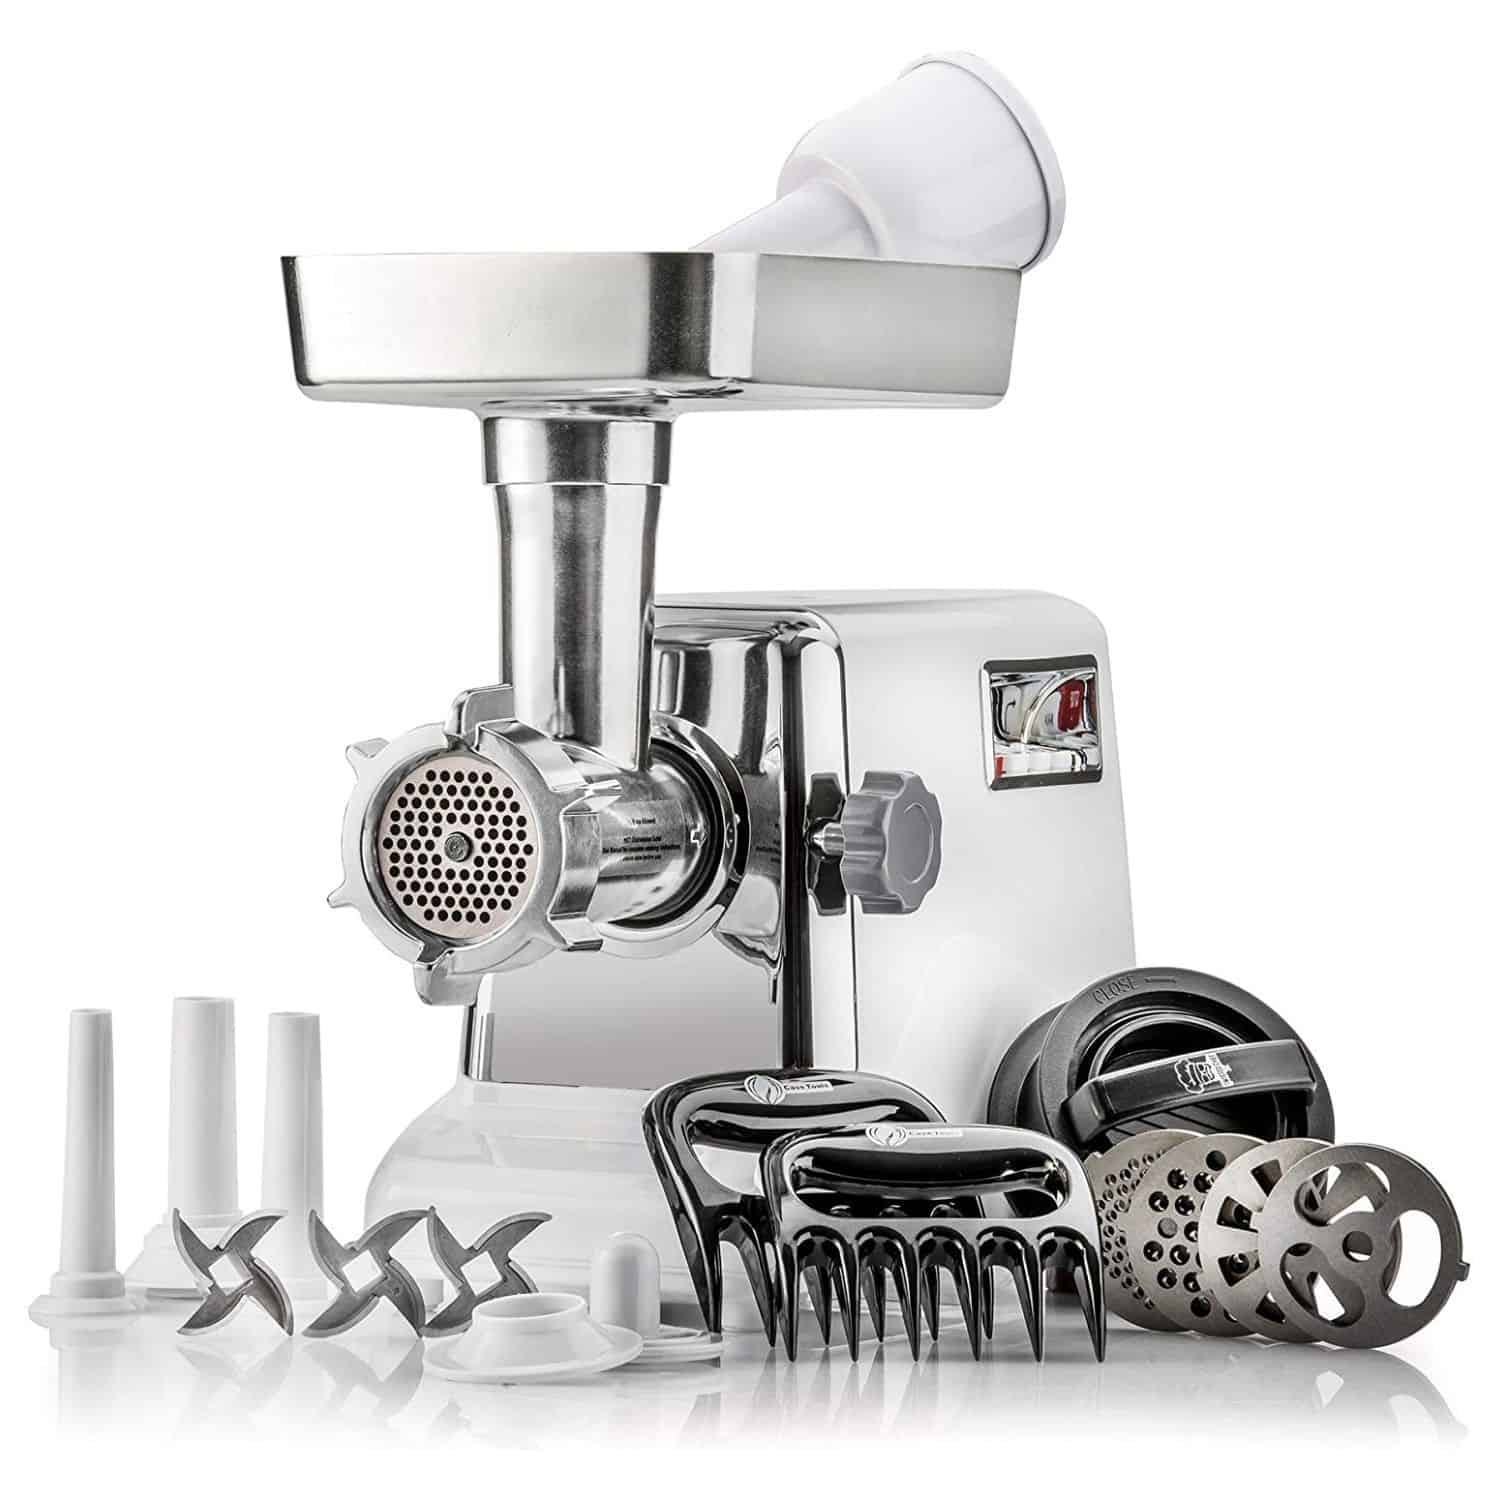 STX Turboforce Classic 3000 Series Electric Meat Grinder & Sausage Stuffer